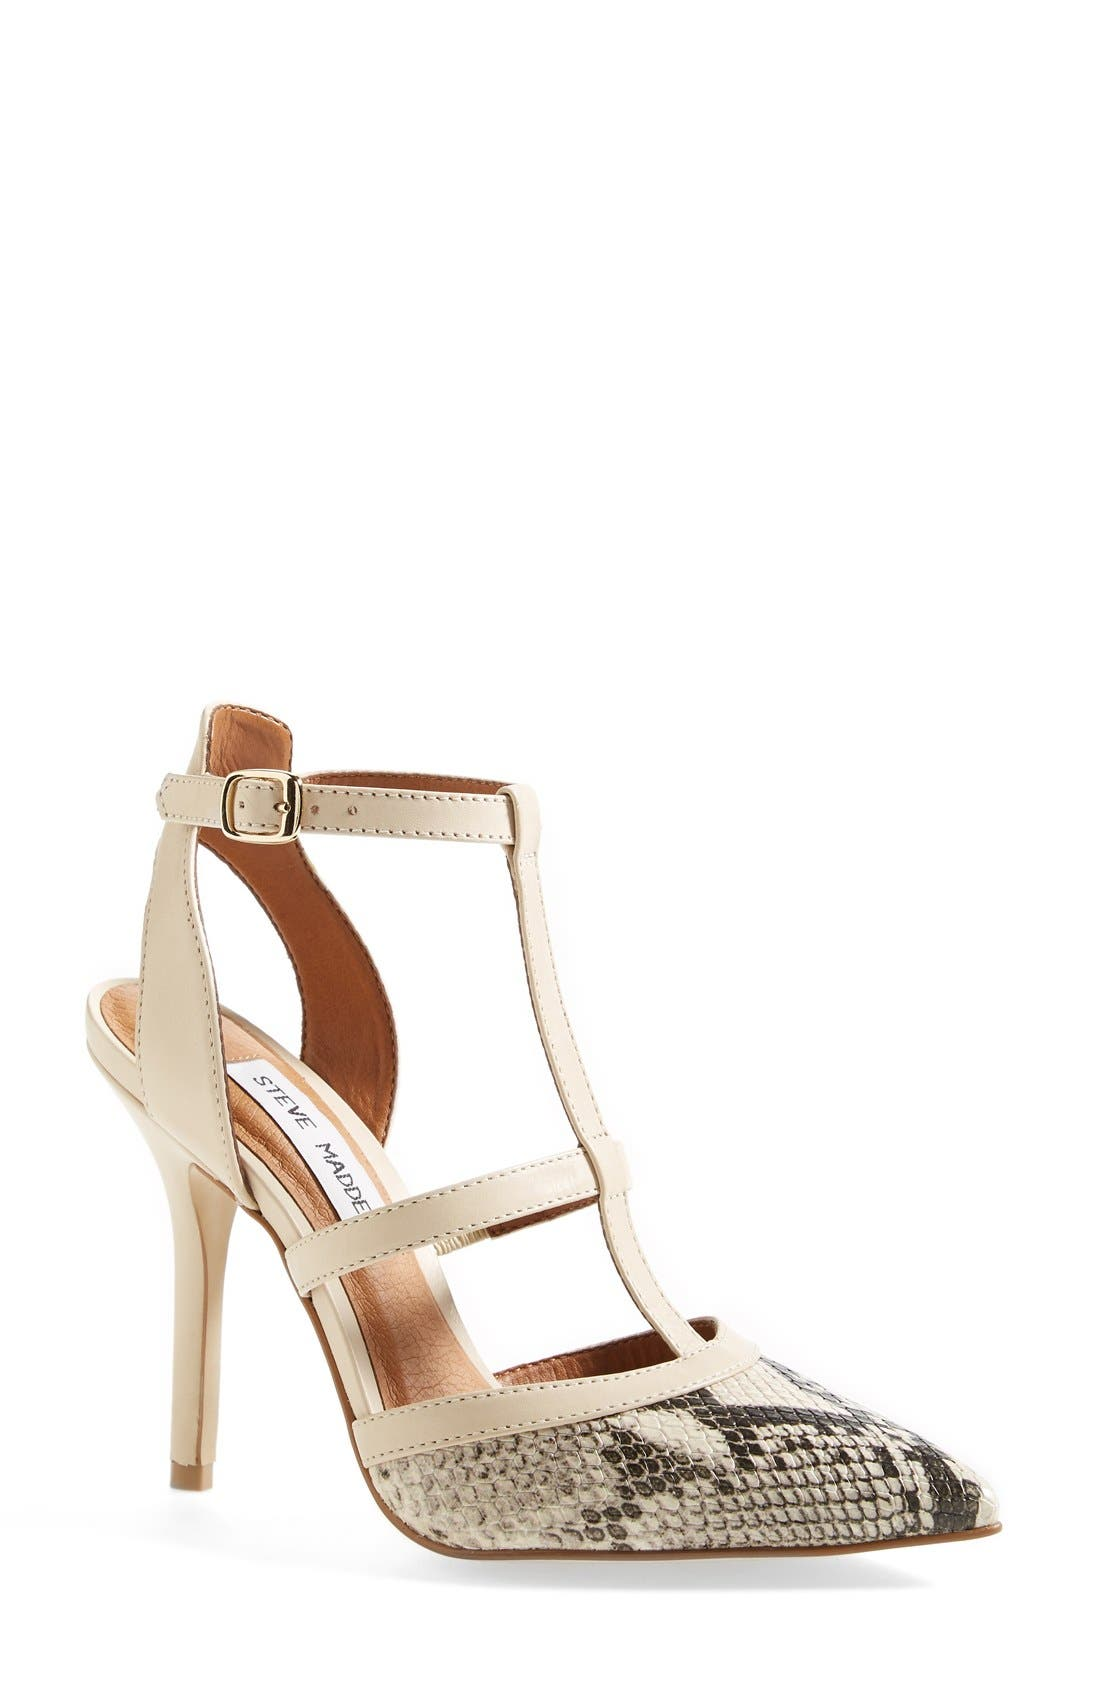 'Surfice' Pointy Toe Pump,                         Main,                         color, Natural Multi